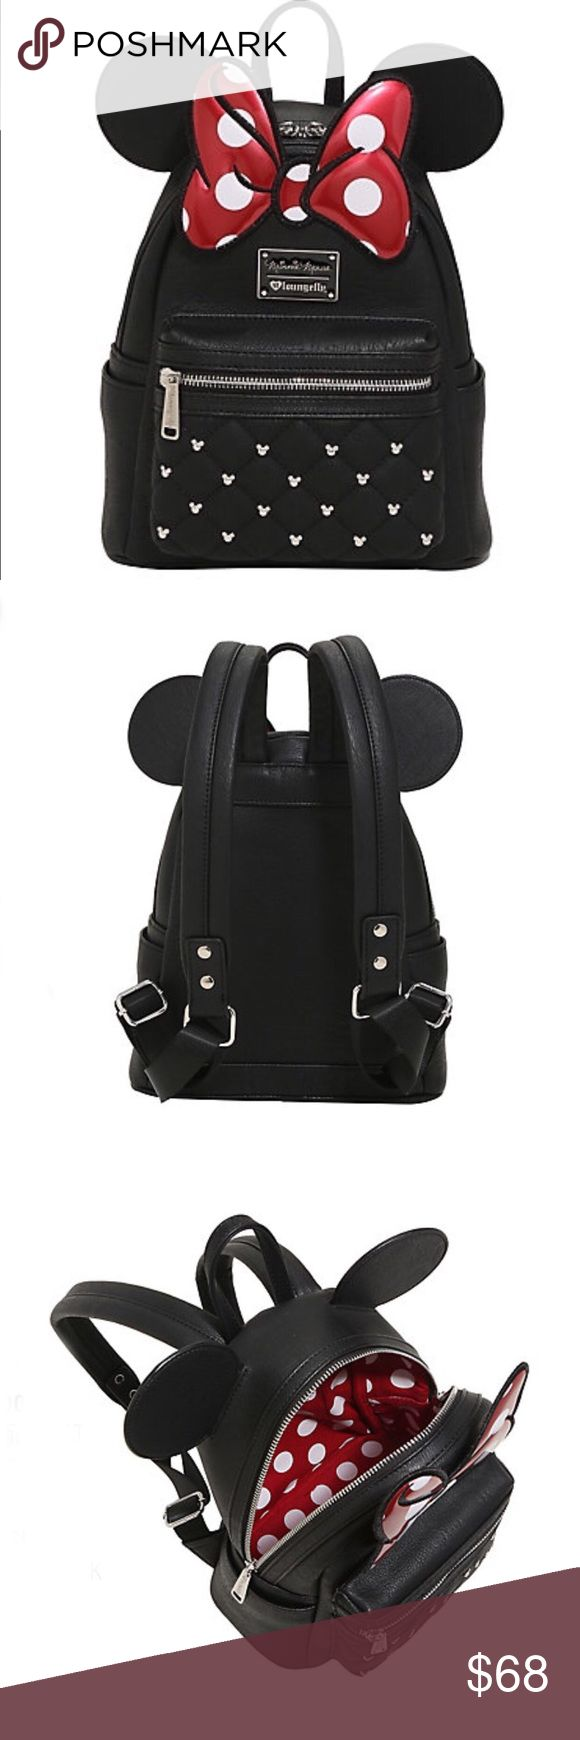 "Minnie Mouse Mini Backpack New Arrival! New Minnie Mouse mini Backpack by Disney. Features Minnie Mouse ears and her signature bow. Plus mouse head studs on the quilted front pocket. Inside has red and white polka dot lining. Zipper closure. Adjustable straps. Comes with original packaging and tags.   Made of faux leather. Measures: 8"" x 4"" x 11""  item by Loungefly.   Tags: Disneyland, Disney world, Star Wars, Donald Duck, Mickey Mouse. Follow game Disney Bags Backpacks"